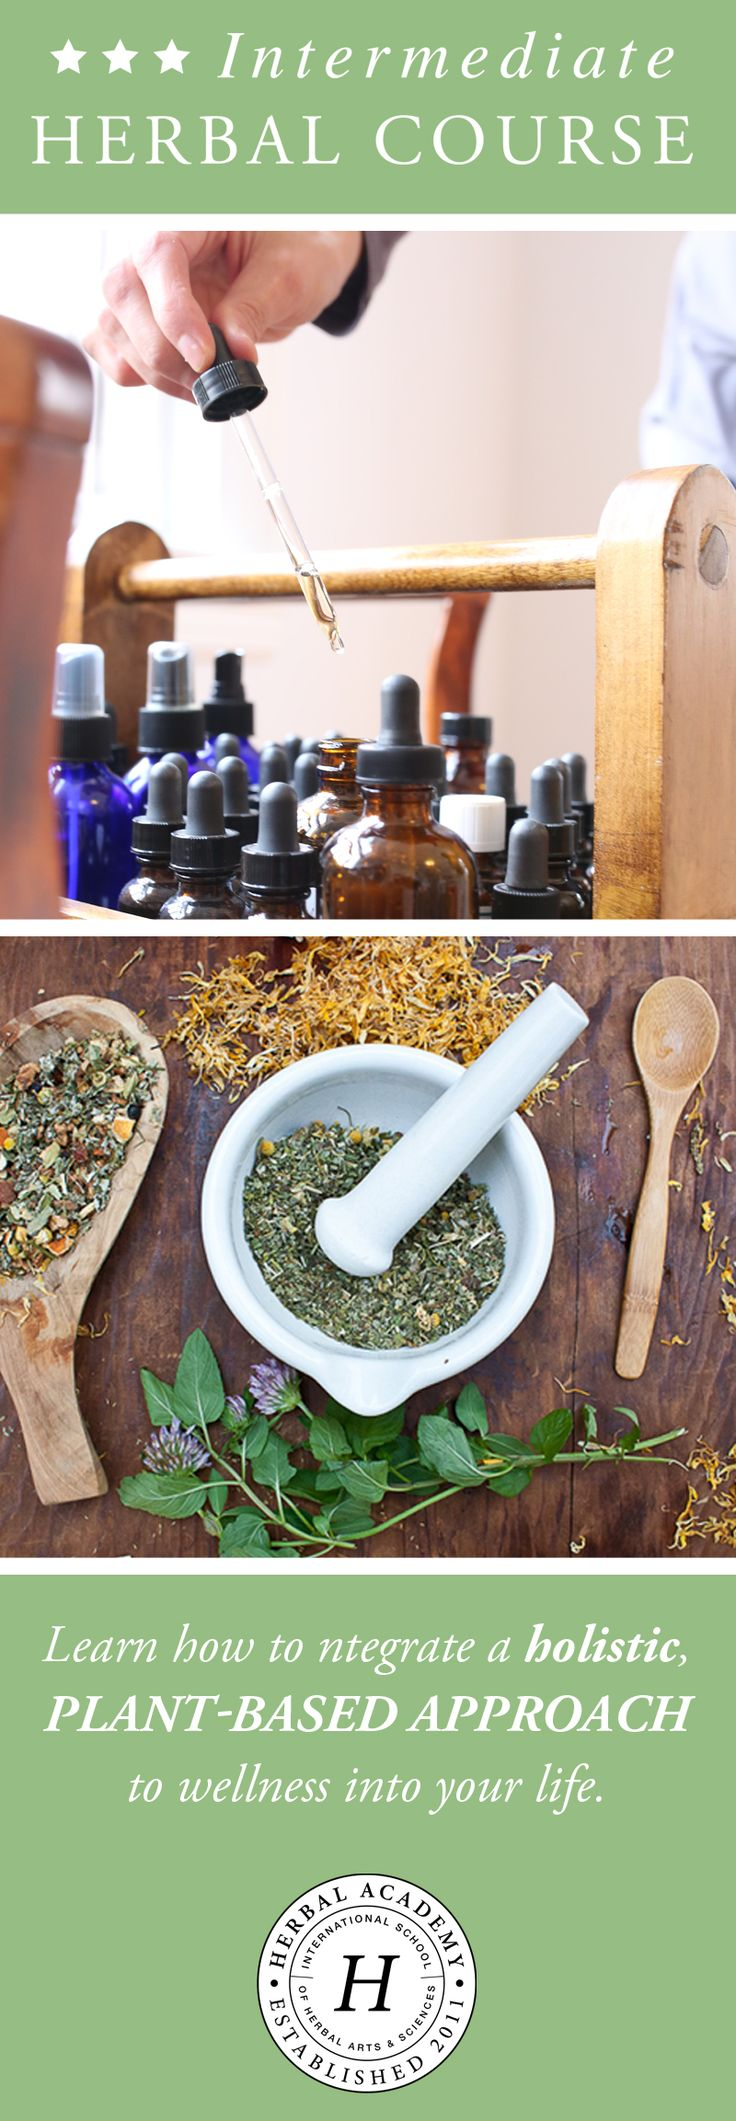 Learn a plant based approach to healing with the Herbal Academy. The Intermediate Herbal Course is an online and self-paced apprenticeship for distant learners. Diverse and thorough, the courses cover topics such as herbal actions, energetics, safety and side effects; discussions about constitutional theory; in-depth coverage of physiology and body systems; food as medicine, and guidance for herbal therapeutics and formulation with plenty of remedies and recipes! Visit to learn more!